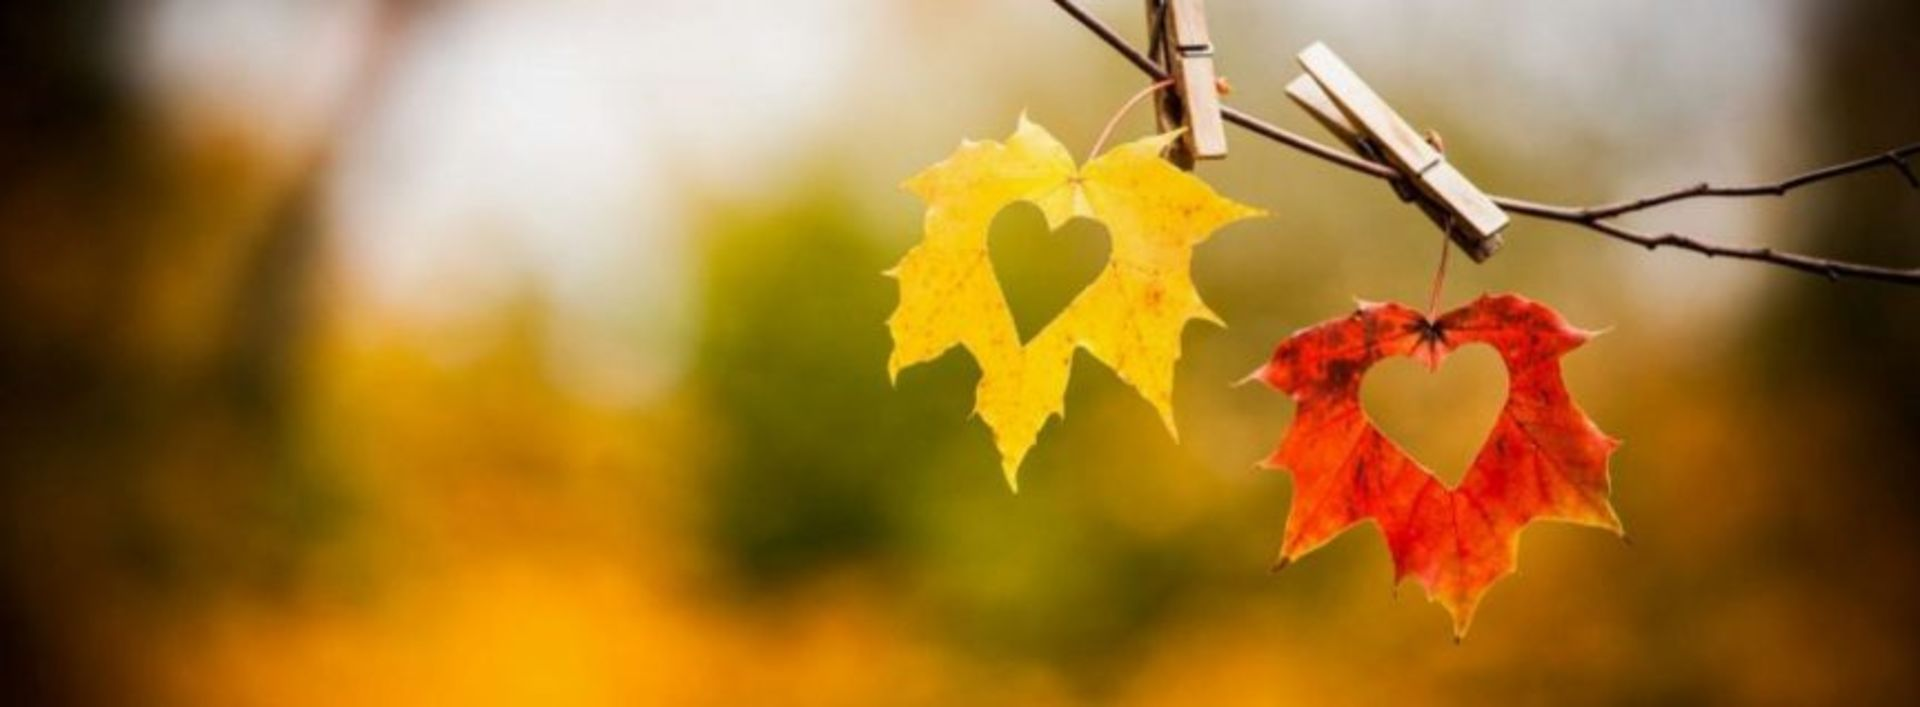 FALL IN LOVE WITH SELLING YOUR HOME THIS SEASON!